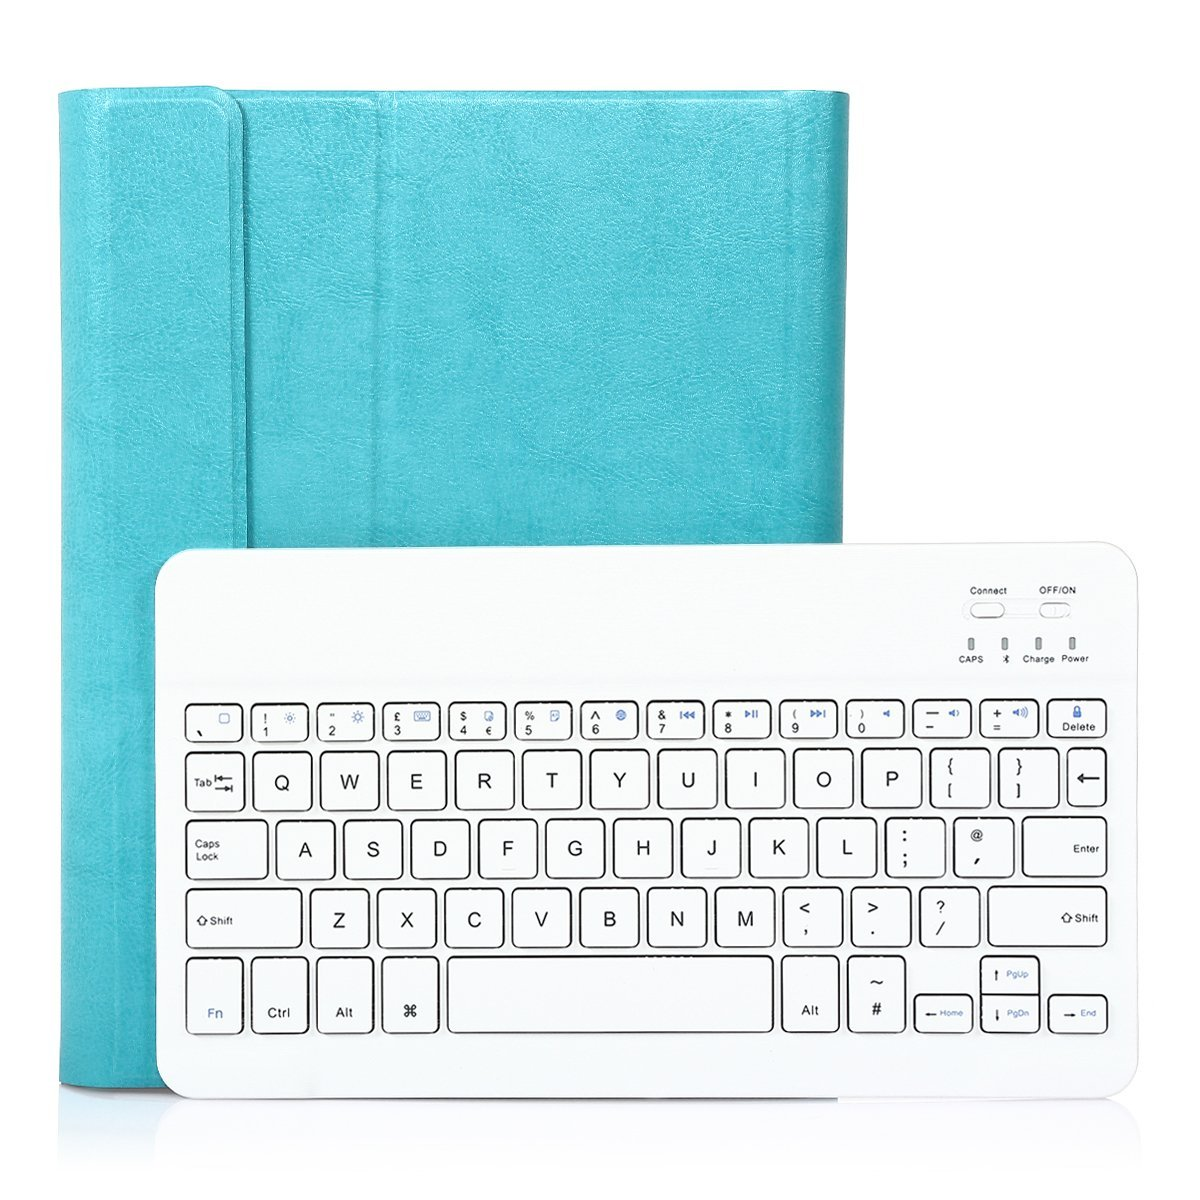 Wireless Hard Bluetooth Keyboard For Apple iPad 2,iPad 3,iPad 4 with PU muti-color Case Cover,CoastaCloud Rechargeable US Layout Bluetooth Keyboard, High Quality PU Leather Shell Case Cover Skin for i